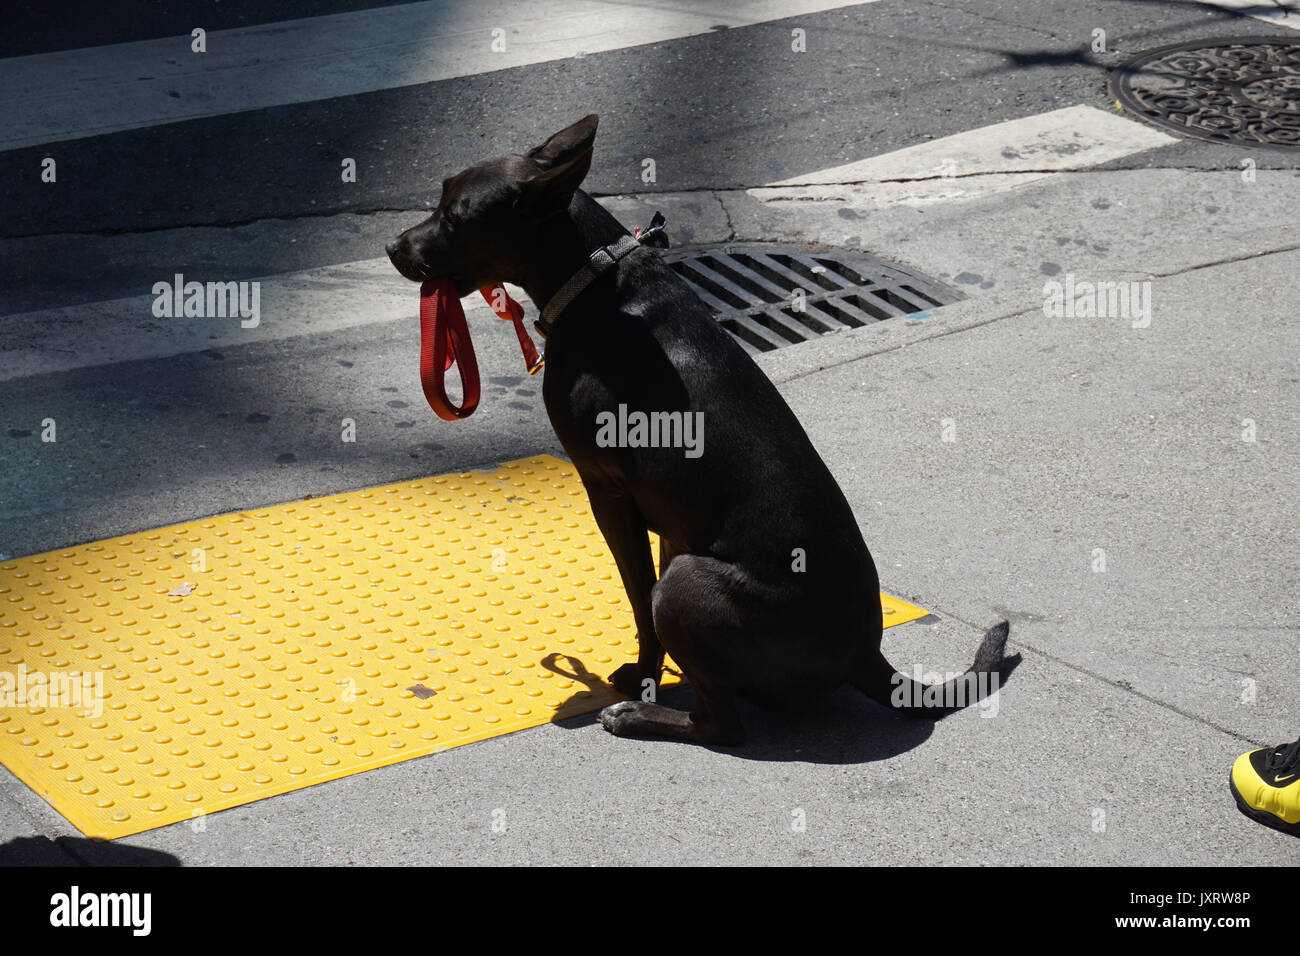 Dog taking itself for walk. - Stock Image